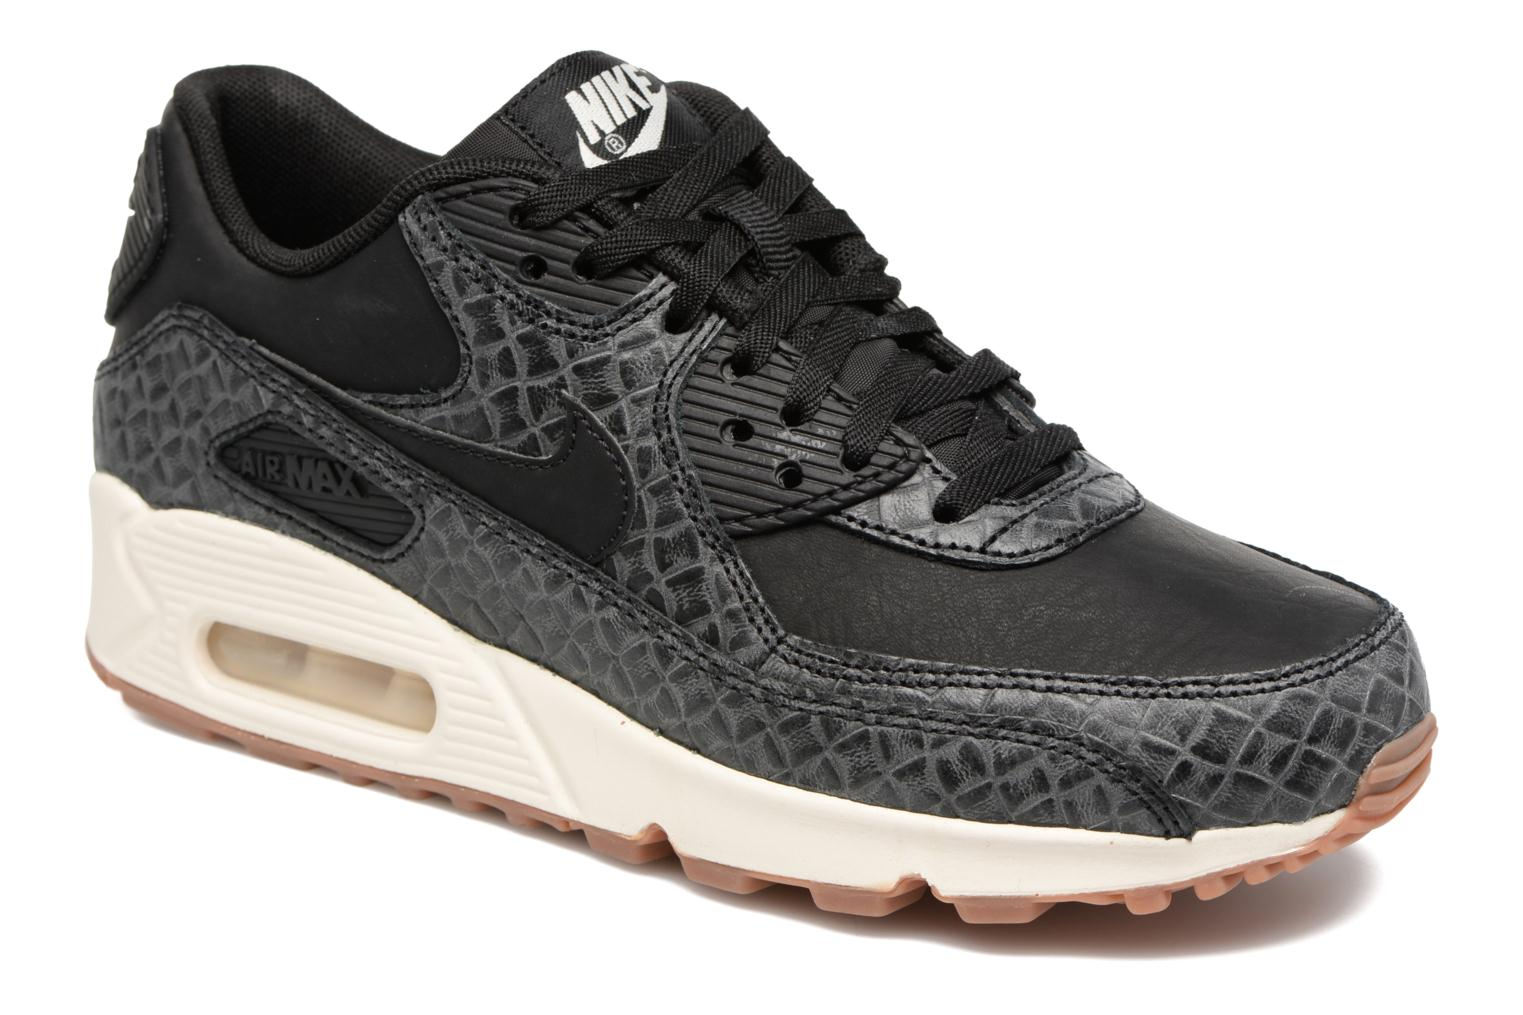 sneakers-wmns-air-max-90-prem-by-nike